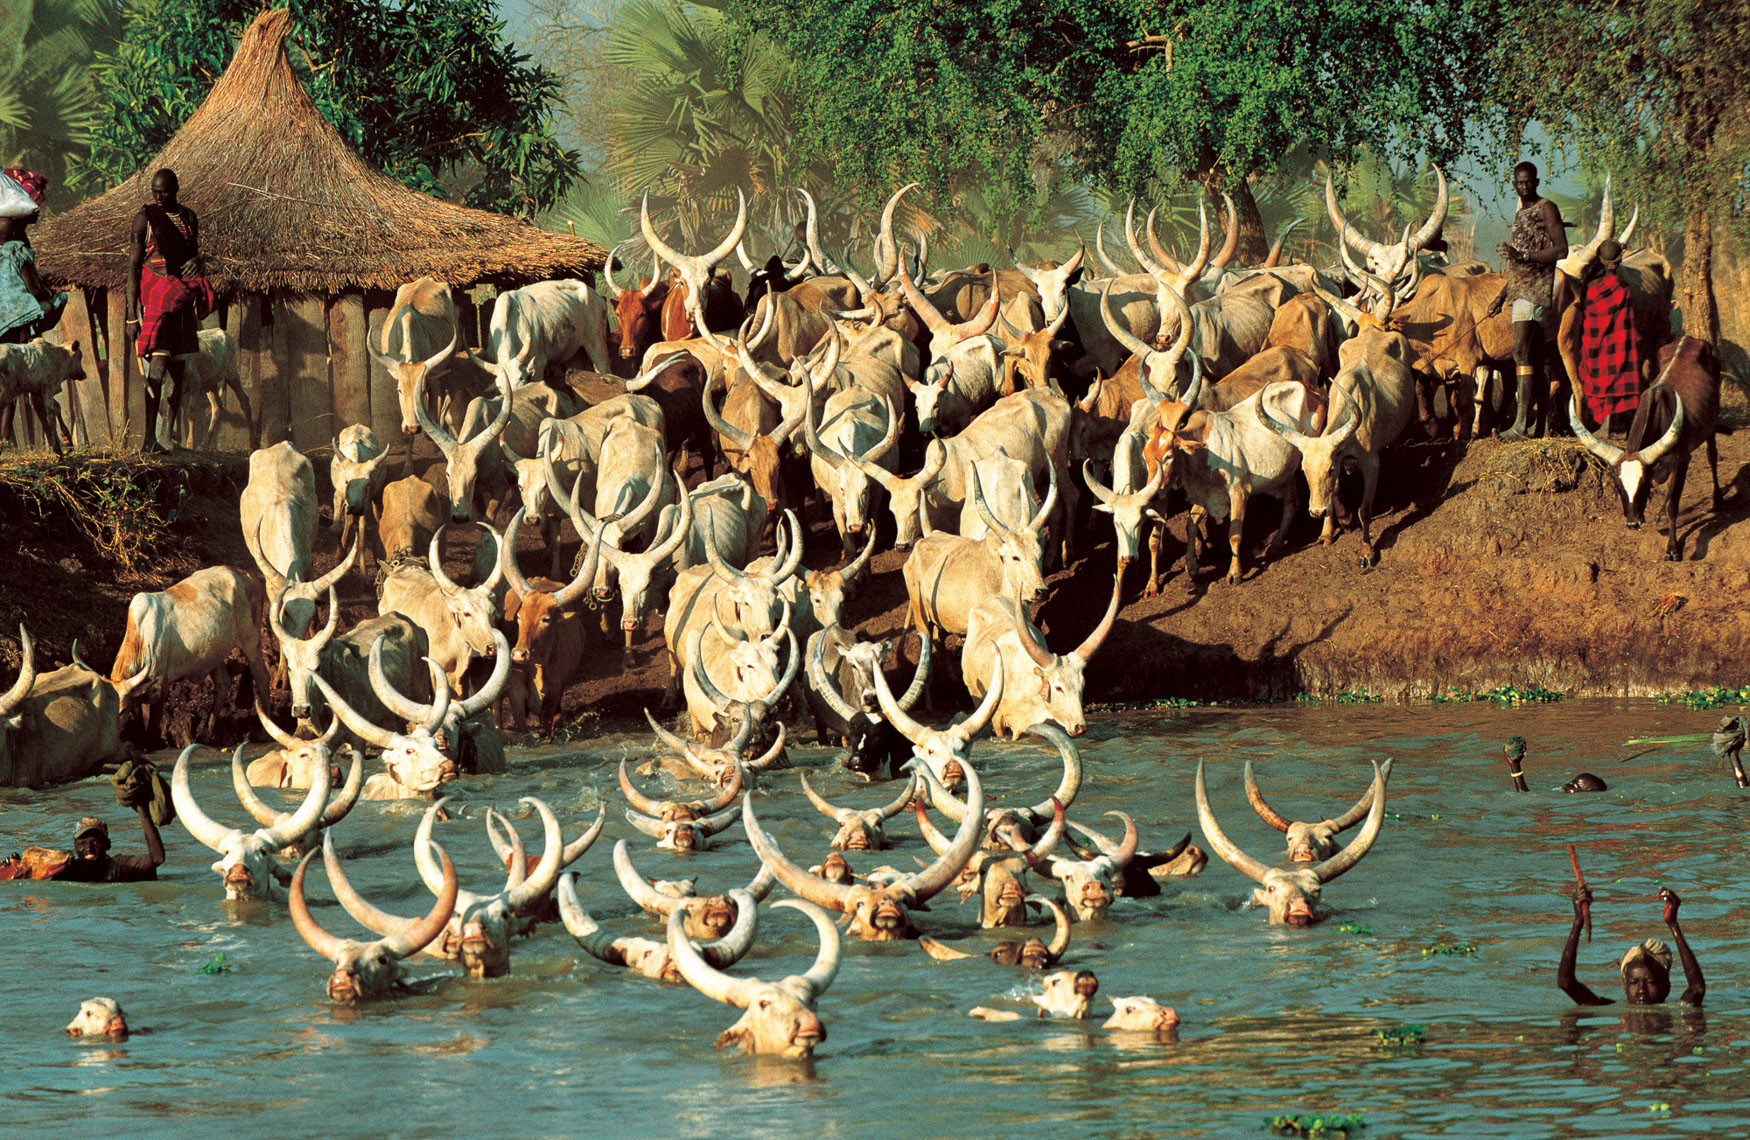 Dinka Cattle Crossing River, South Sudan